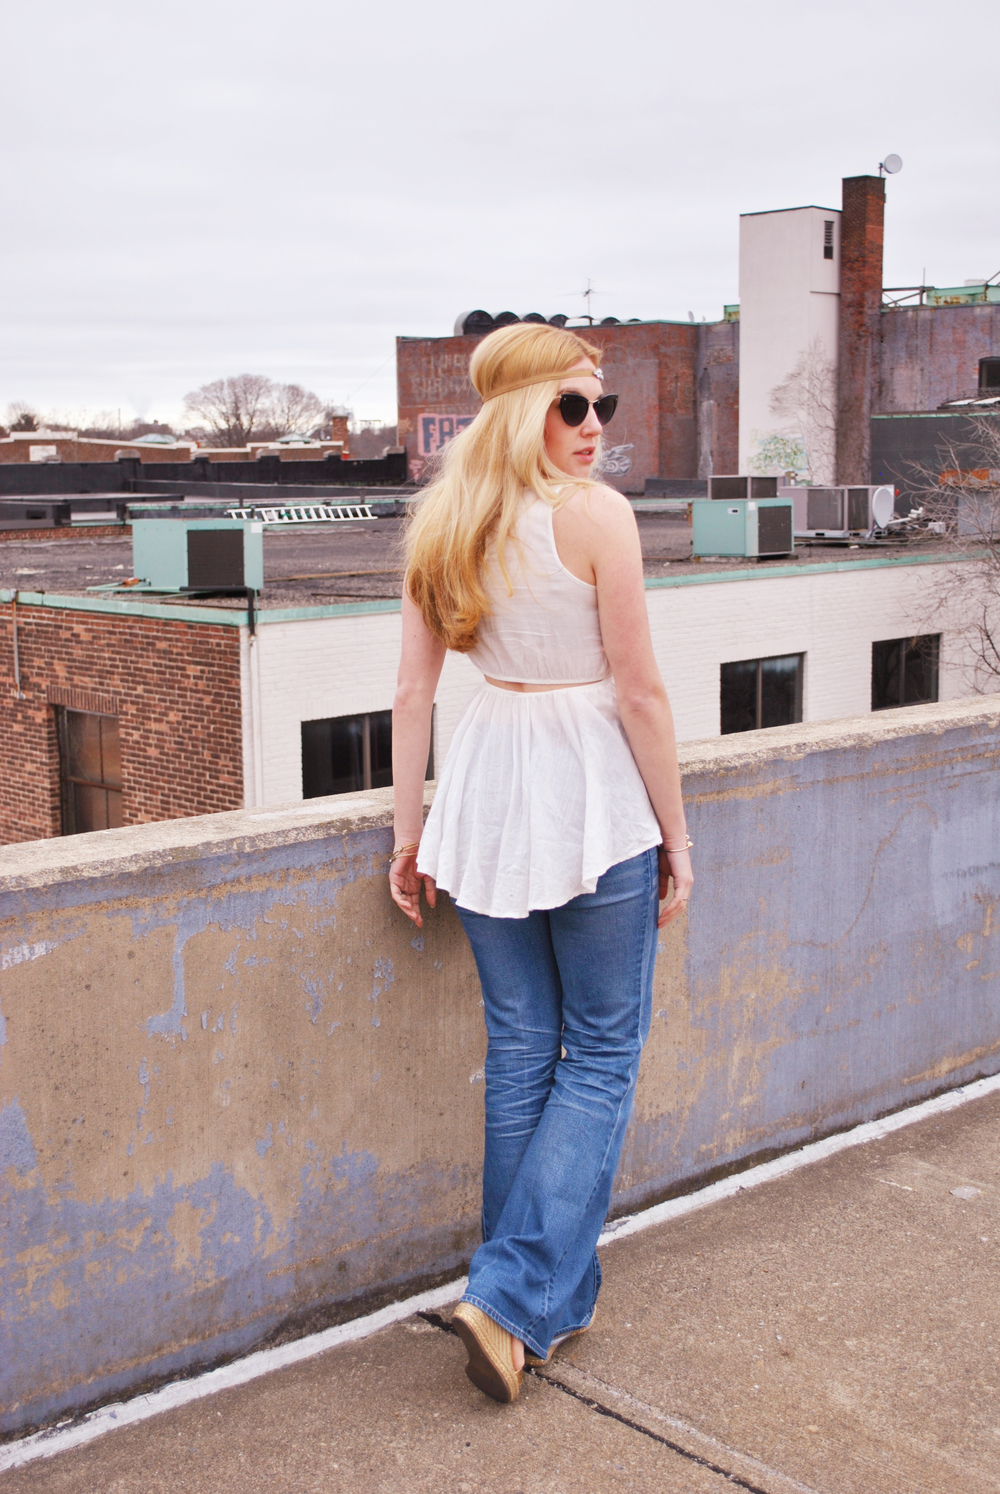 thoughtfulwish | hippie chic // boston // boston blogger // fashion blogger // ootd // music festival outfit // madewell // nordstrom // denim outfit // meredith wish